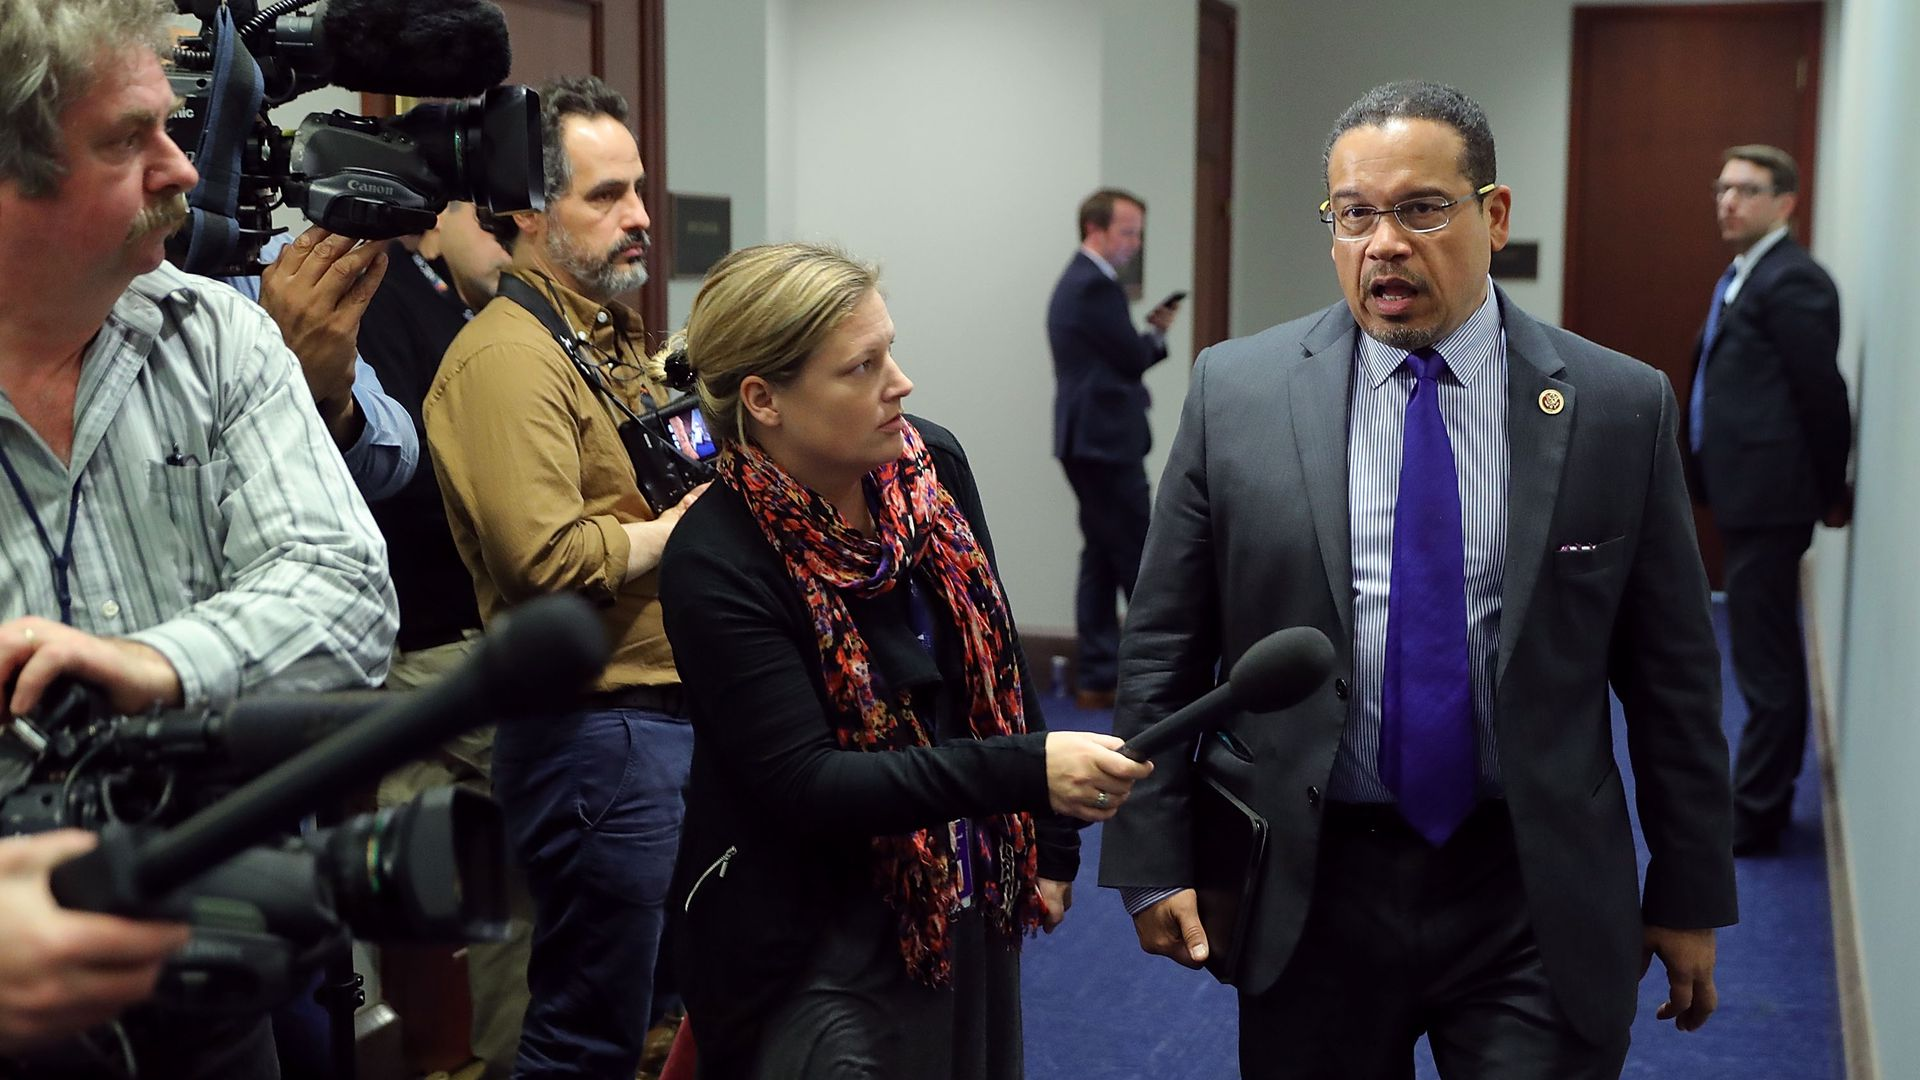 Democratic National Committee Deputy Chair Rep. Keith Ellison (D-MN) (R) talks to reporters